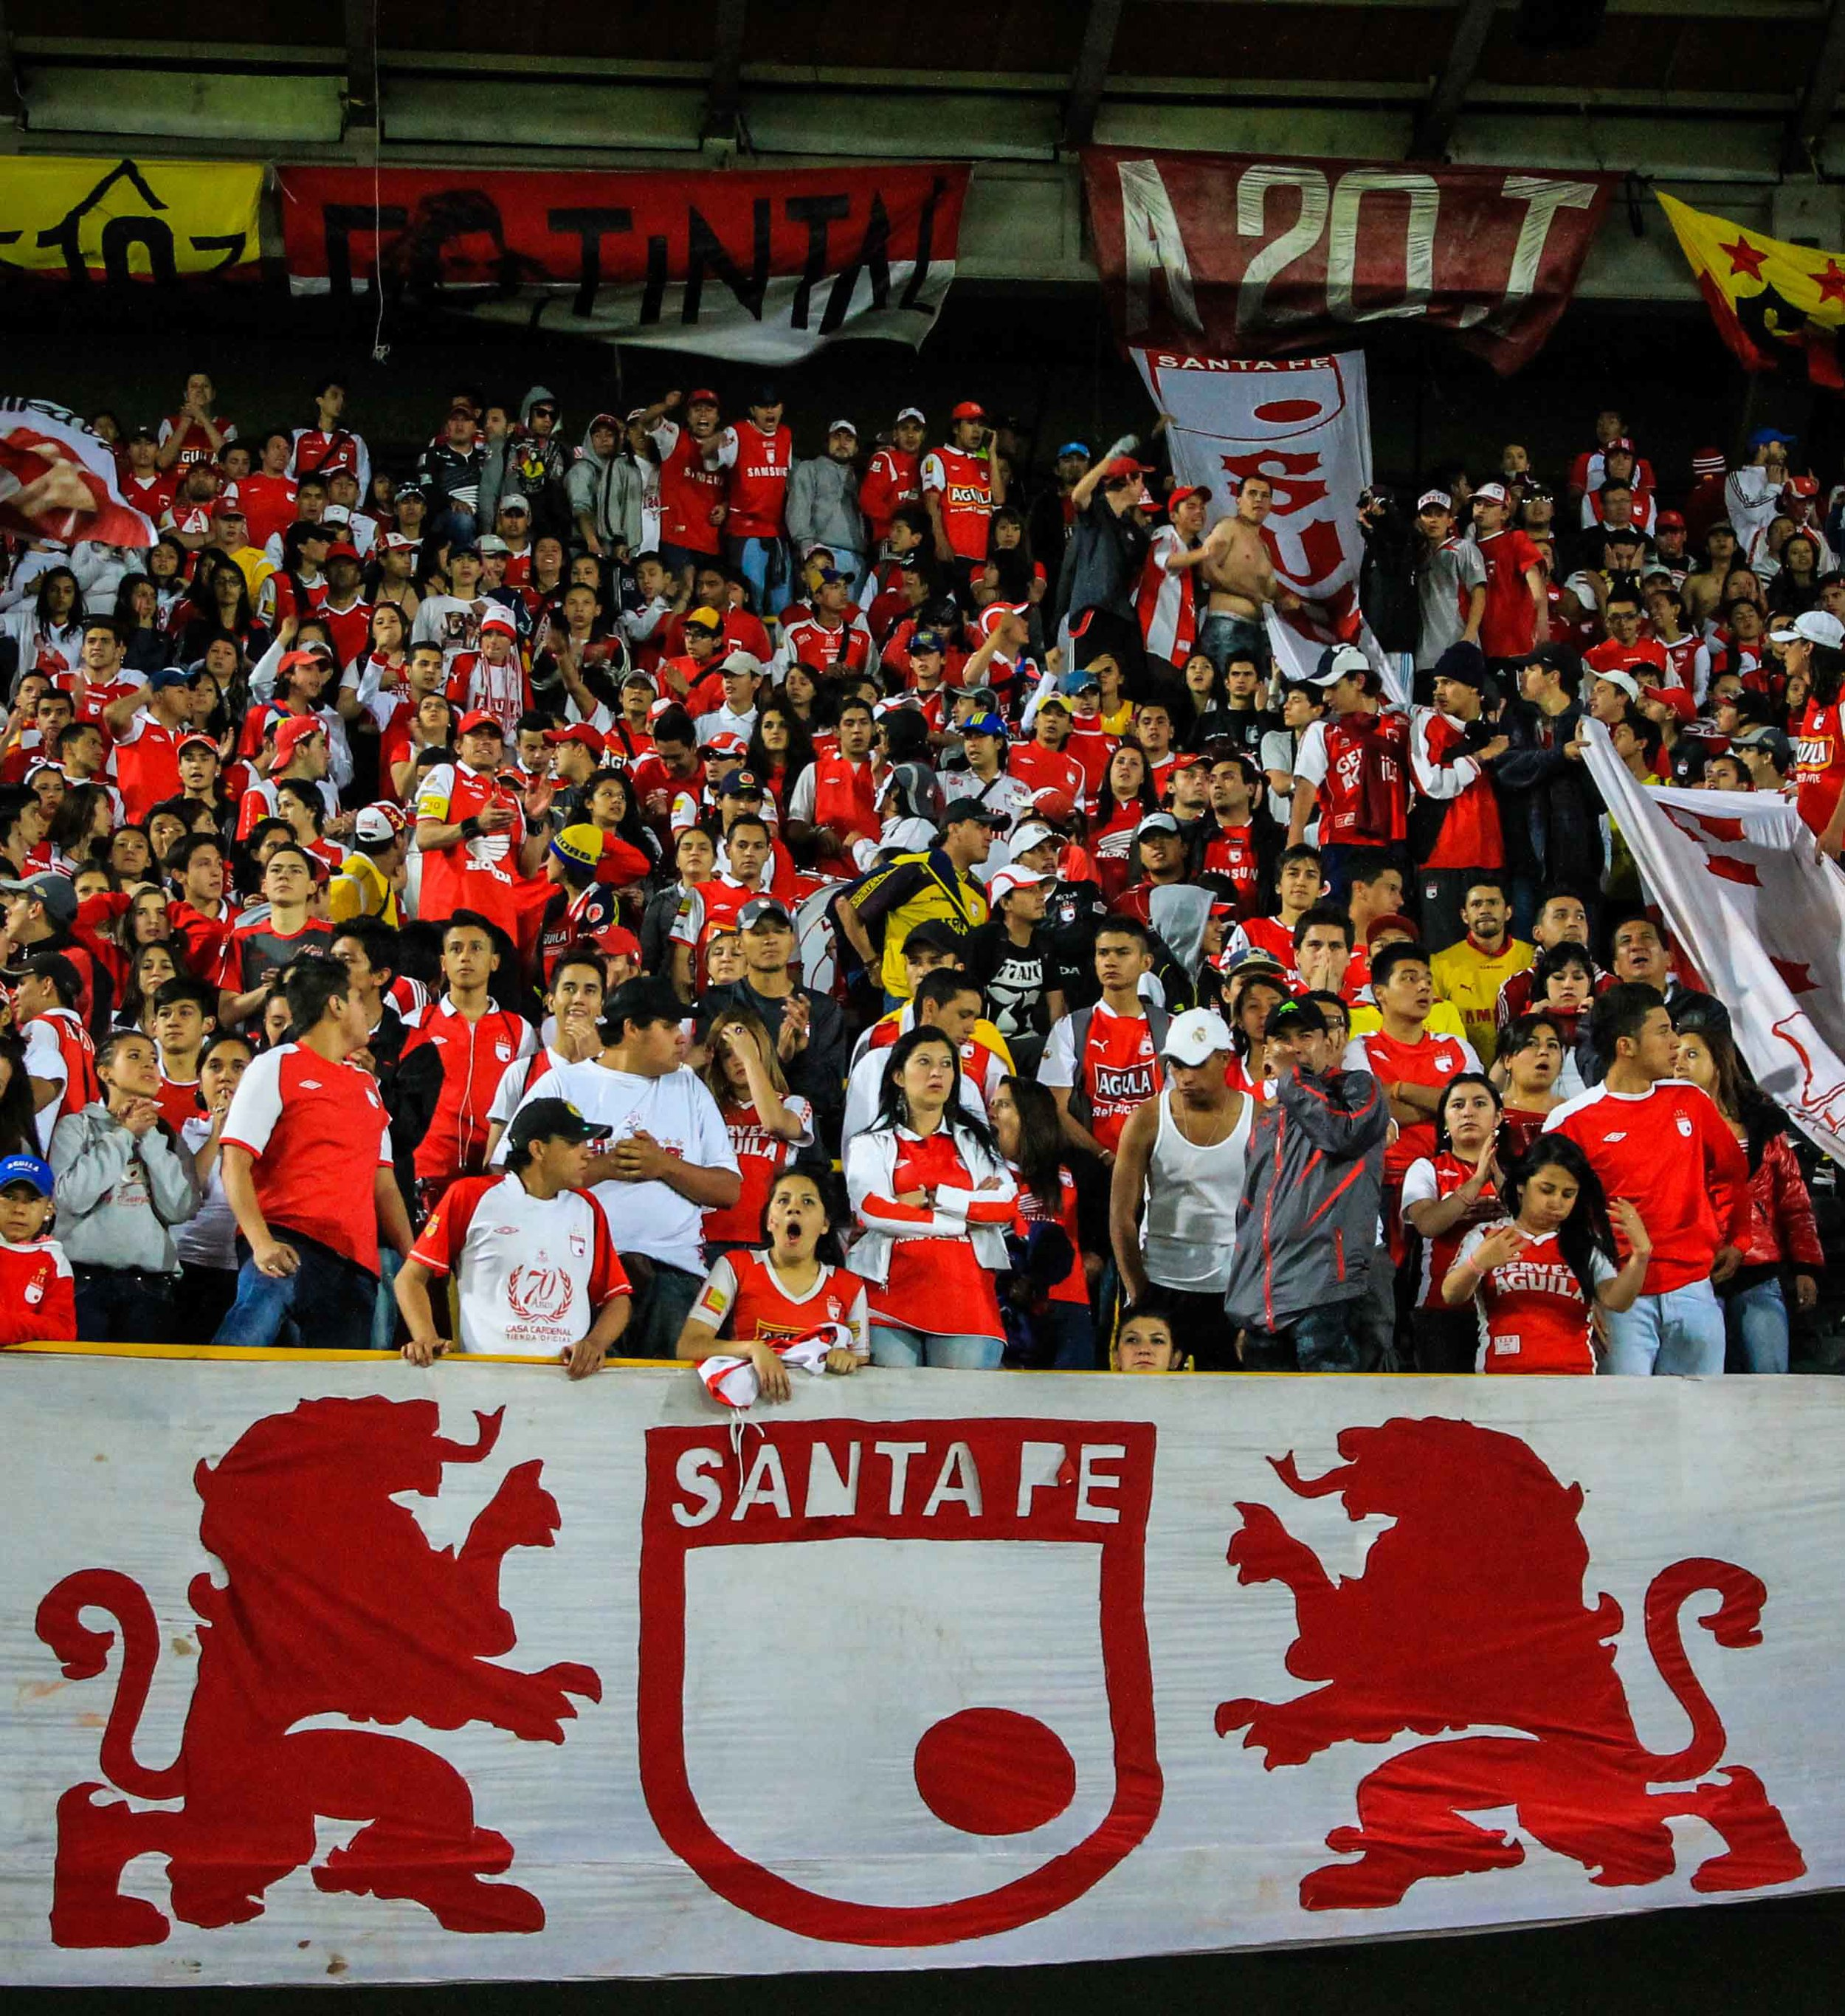 """Santafereños always carry """"the heart of a lion"""", they say."""